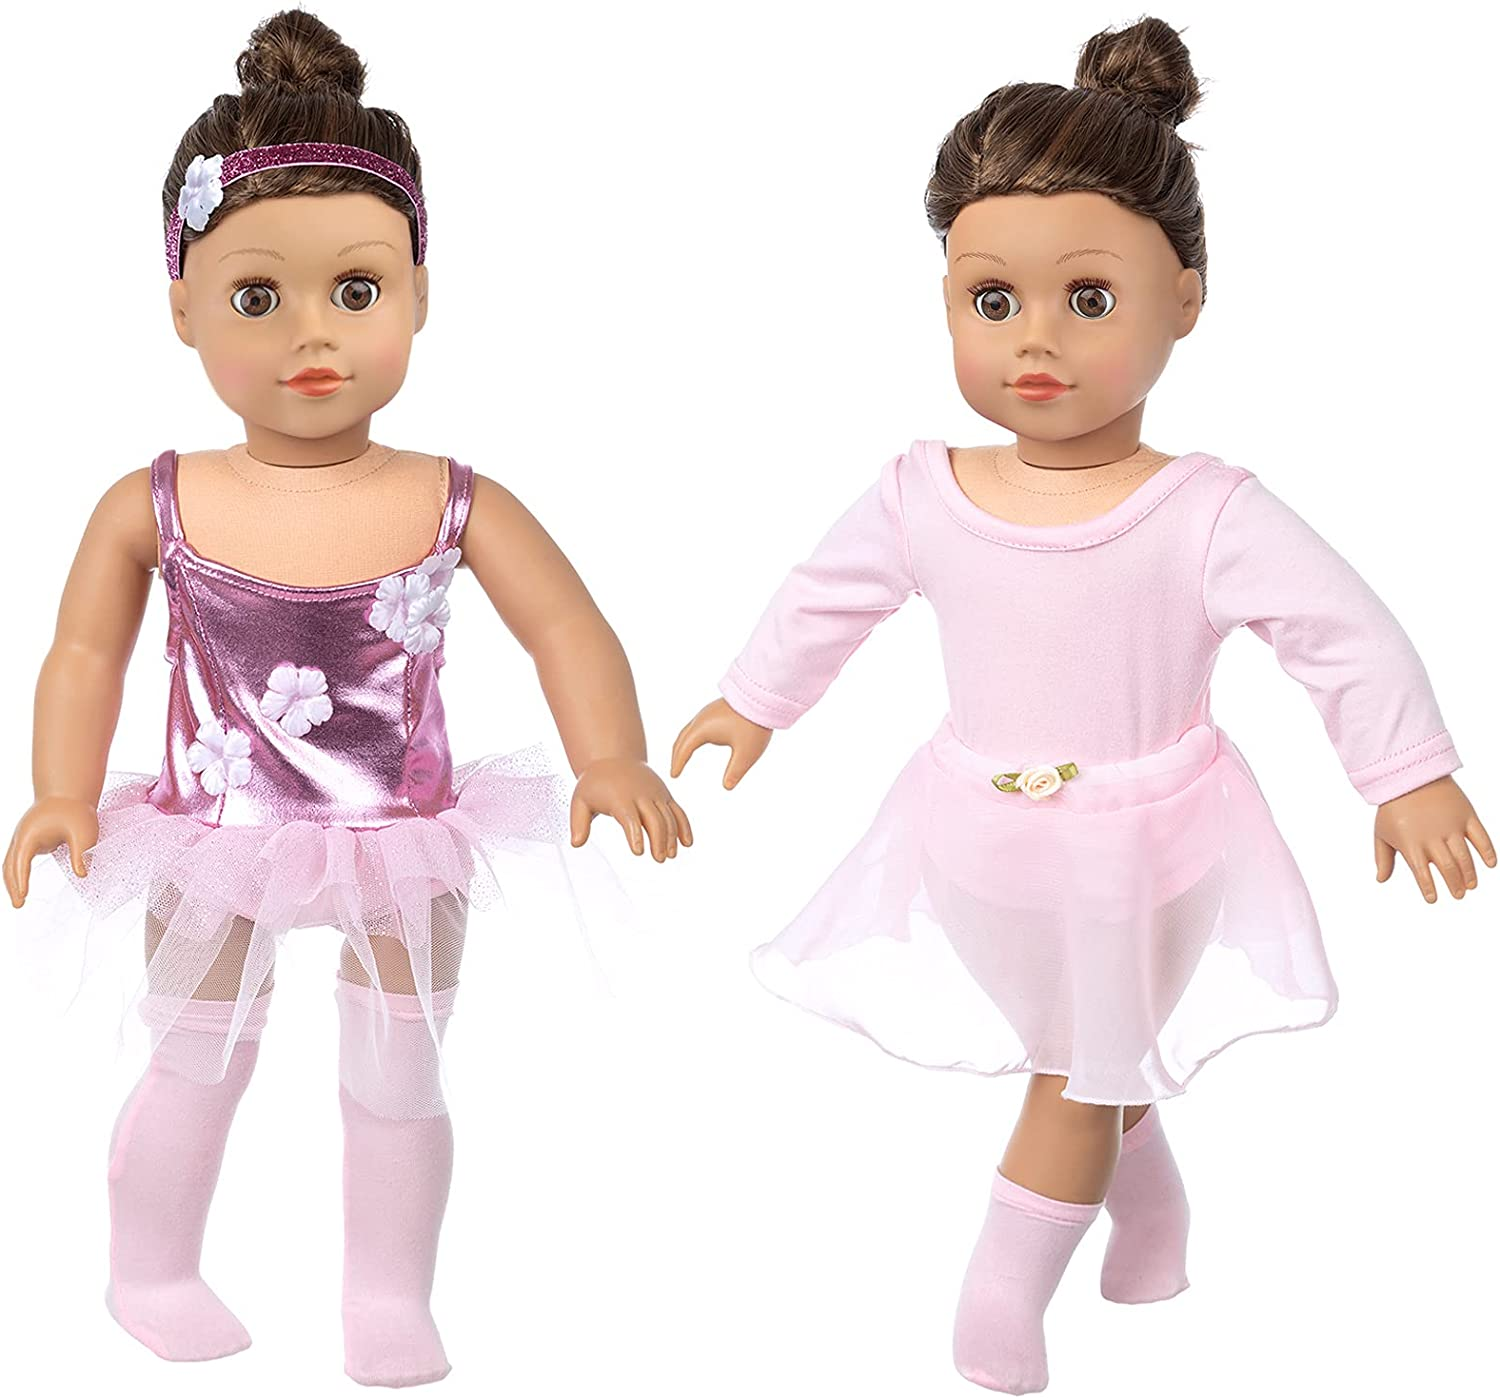 K.T.Fancy American 18 Ranking TOP7 Inch Girl 5 Clothes Accessories Doll Latest item Pcs